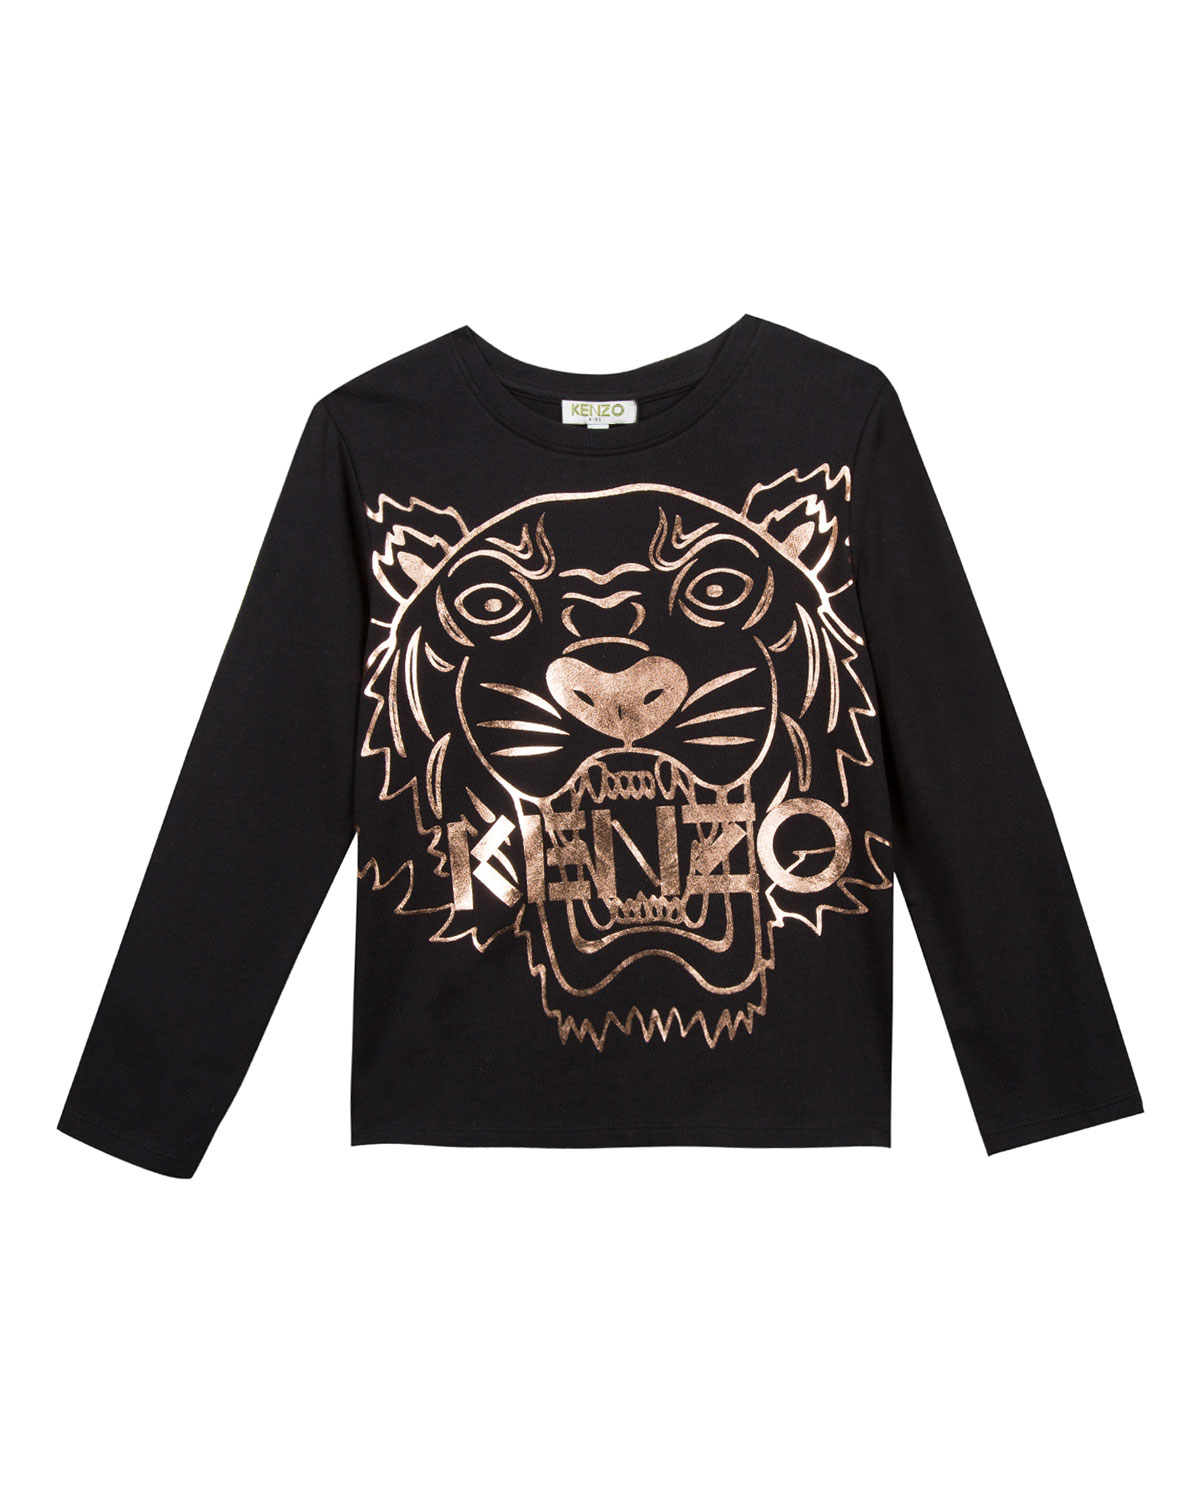 8f57f829ef0 Kenzo Metallic Tiger Face Icon Long-Sleeve T-Shirt, Size 4-6 ...